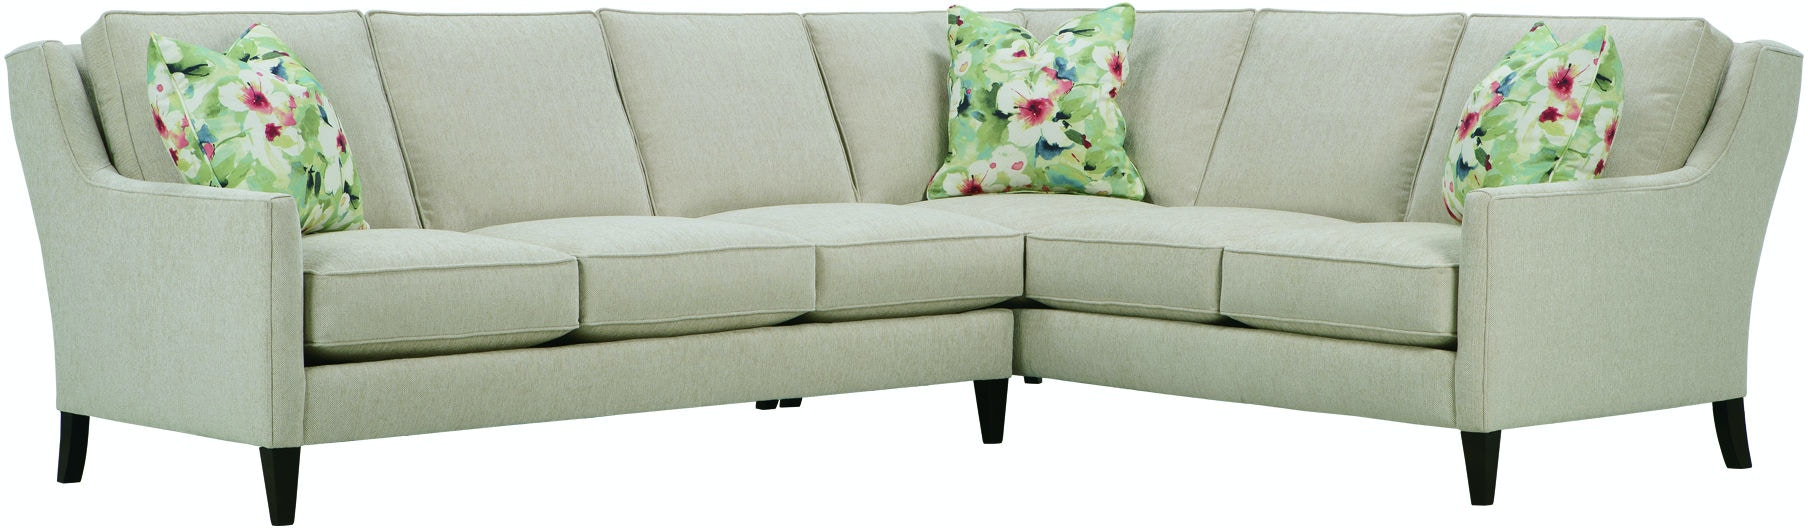 Rowe Living Room Andee Sectional P390 Sect Strobler Home